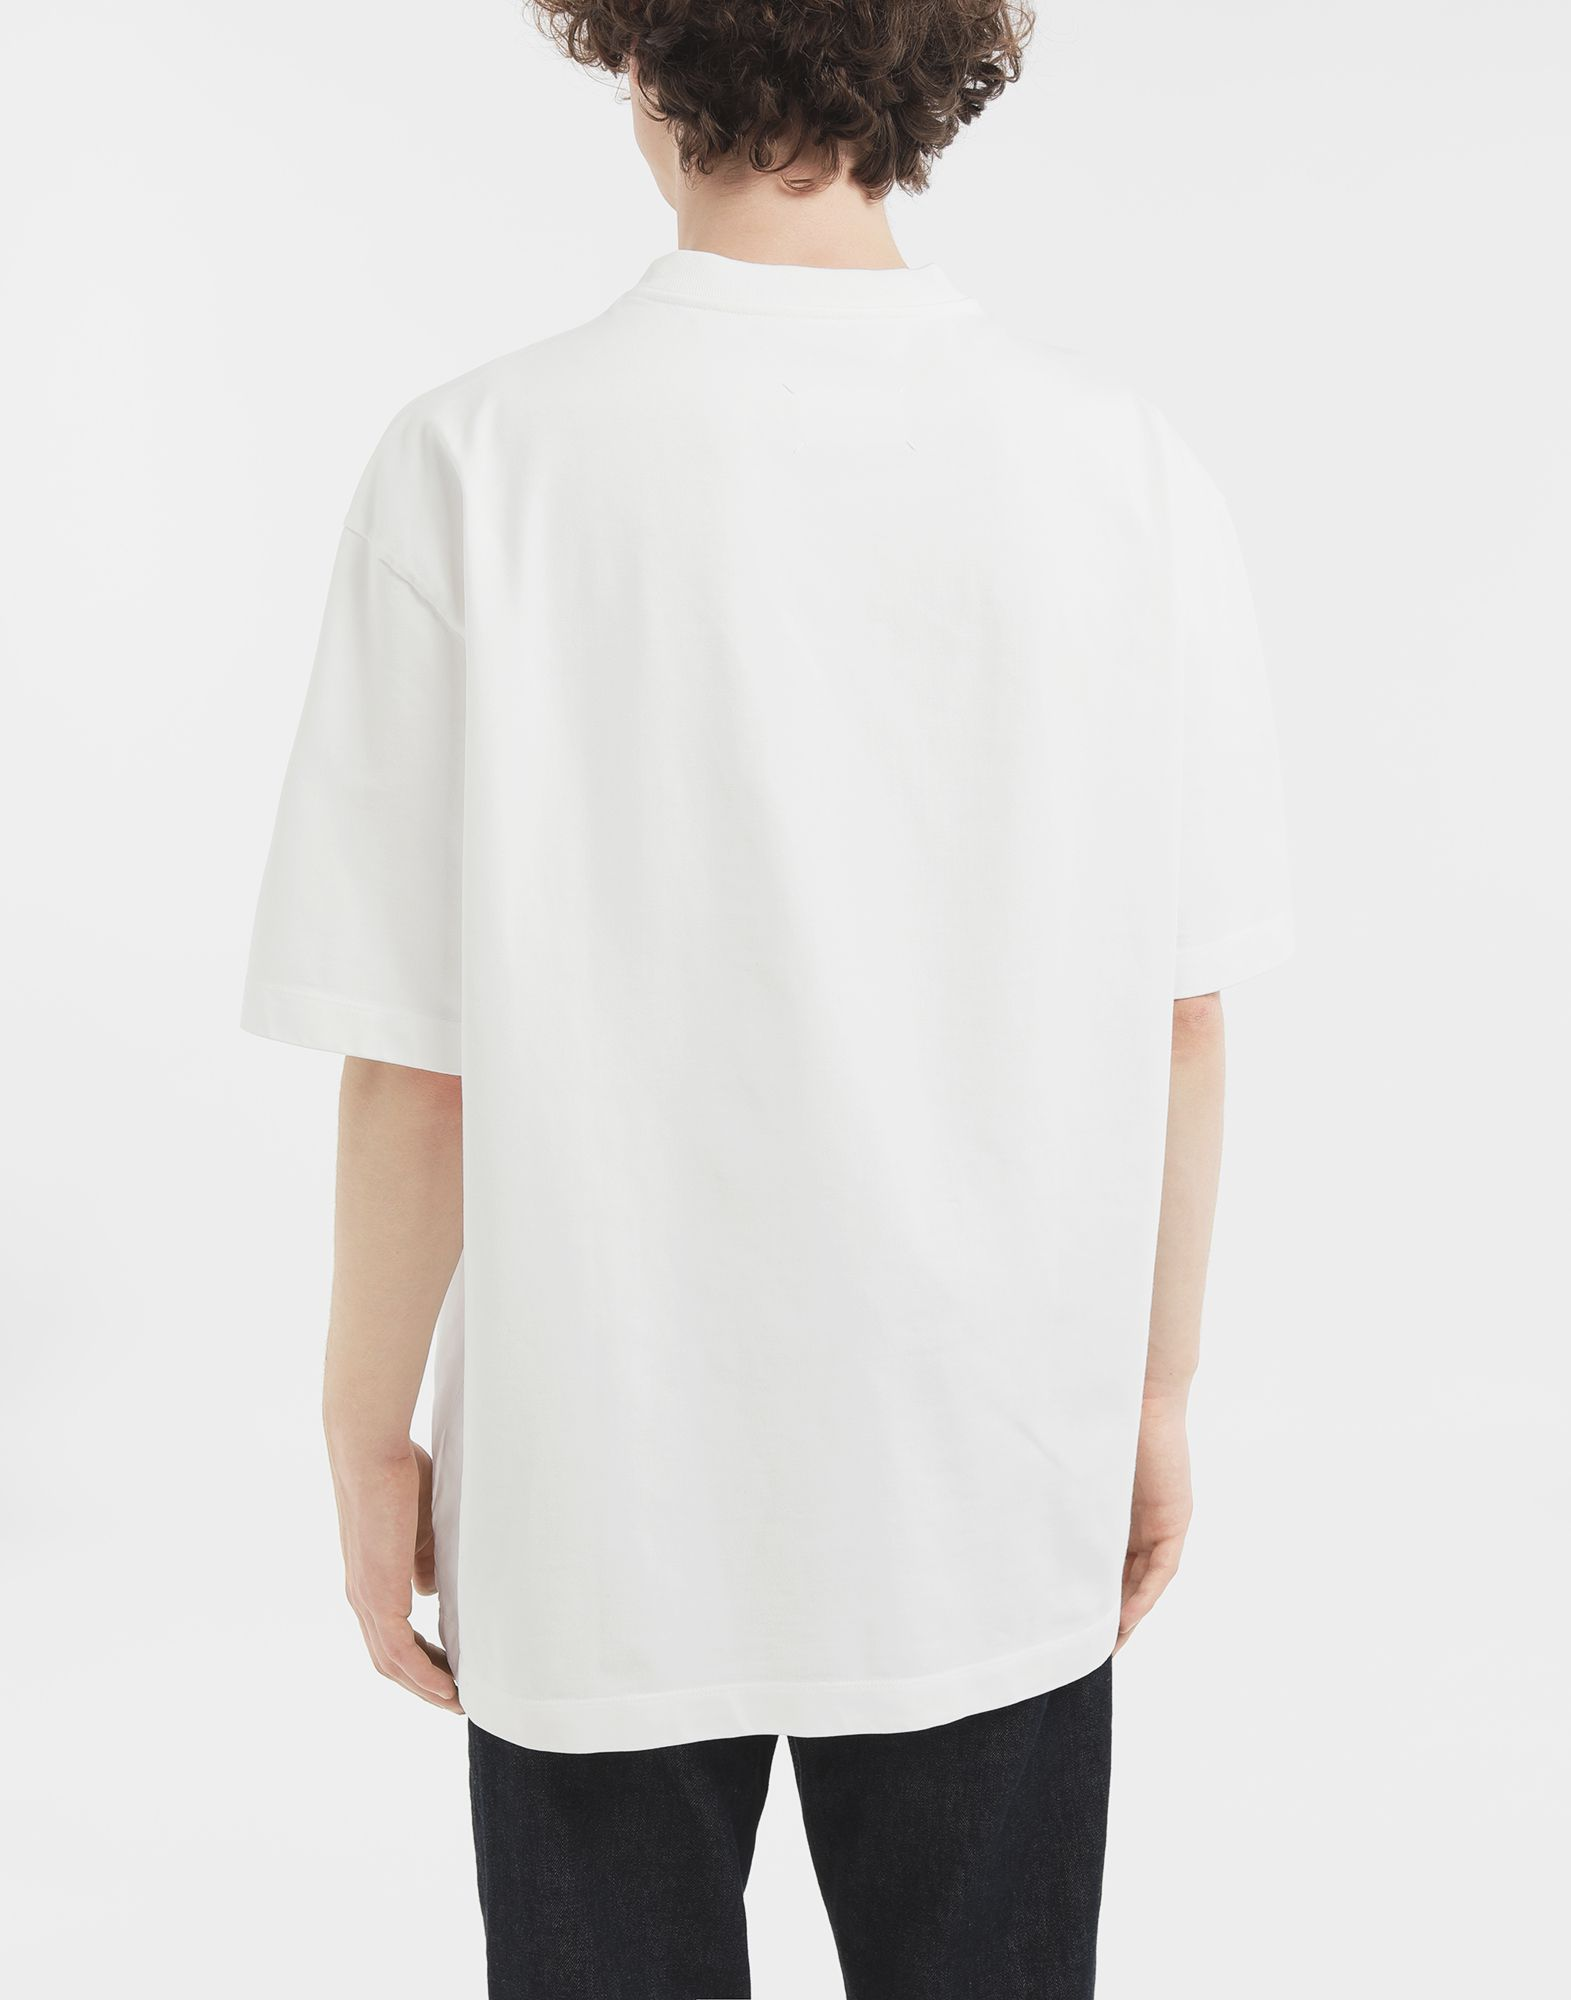 MAISON MARGIELA 'Caution' label T-shirt Short sleeve t-shirt Man e